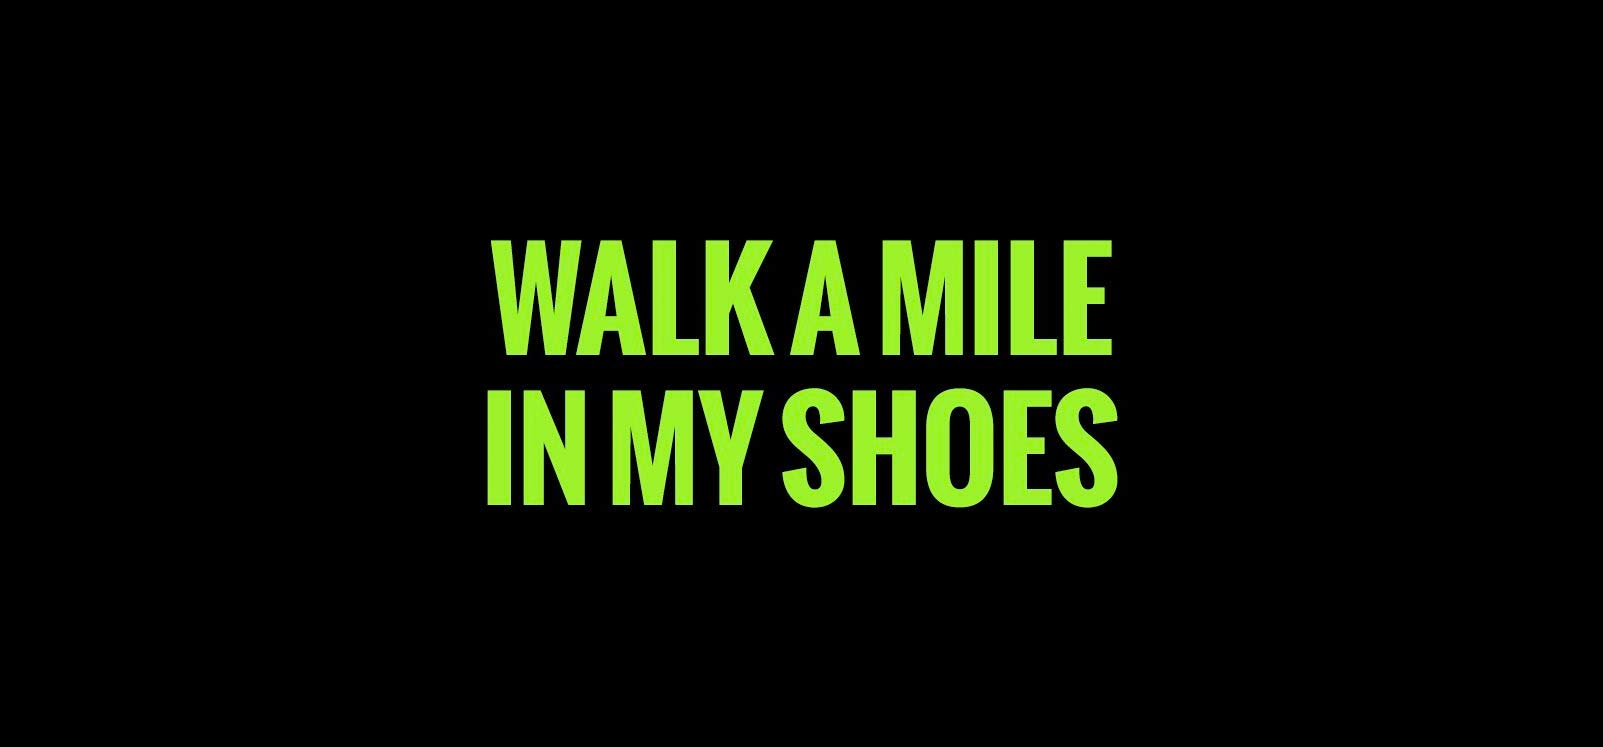 """""""Walk a mile in my shoes"""" written in green on black background"""